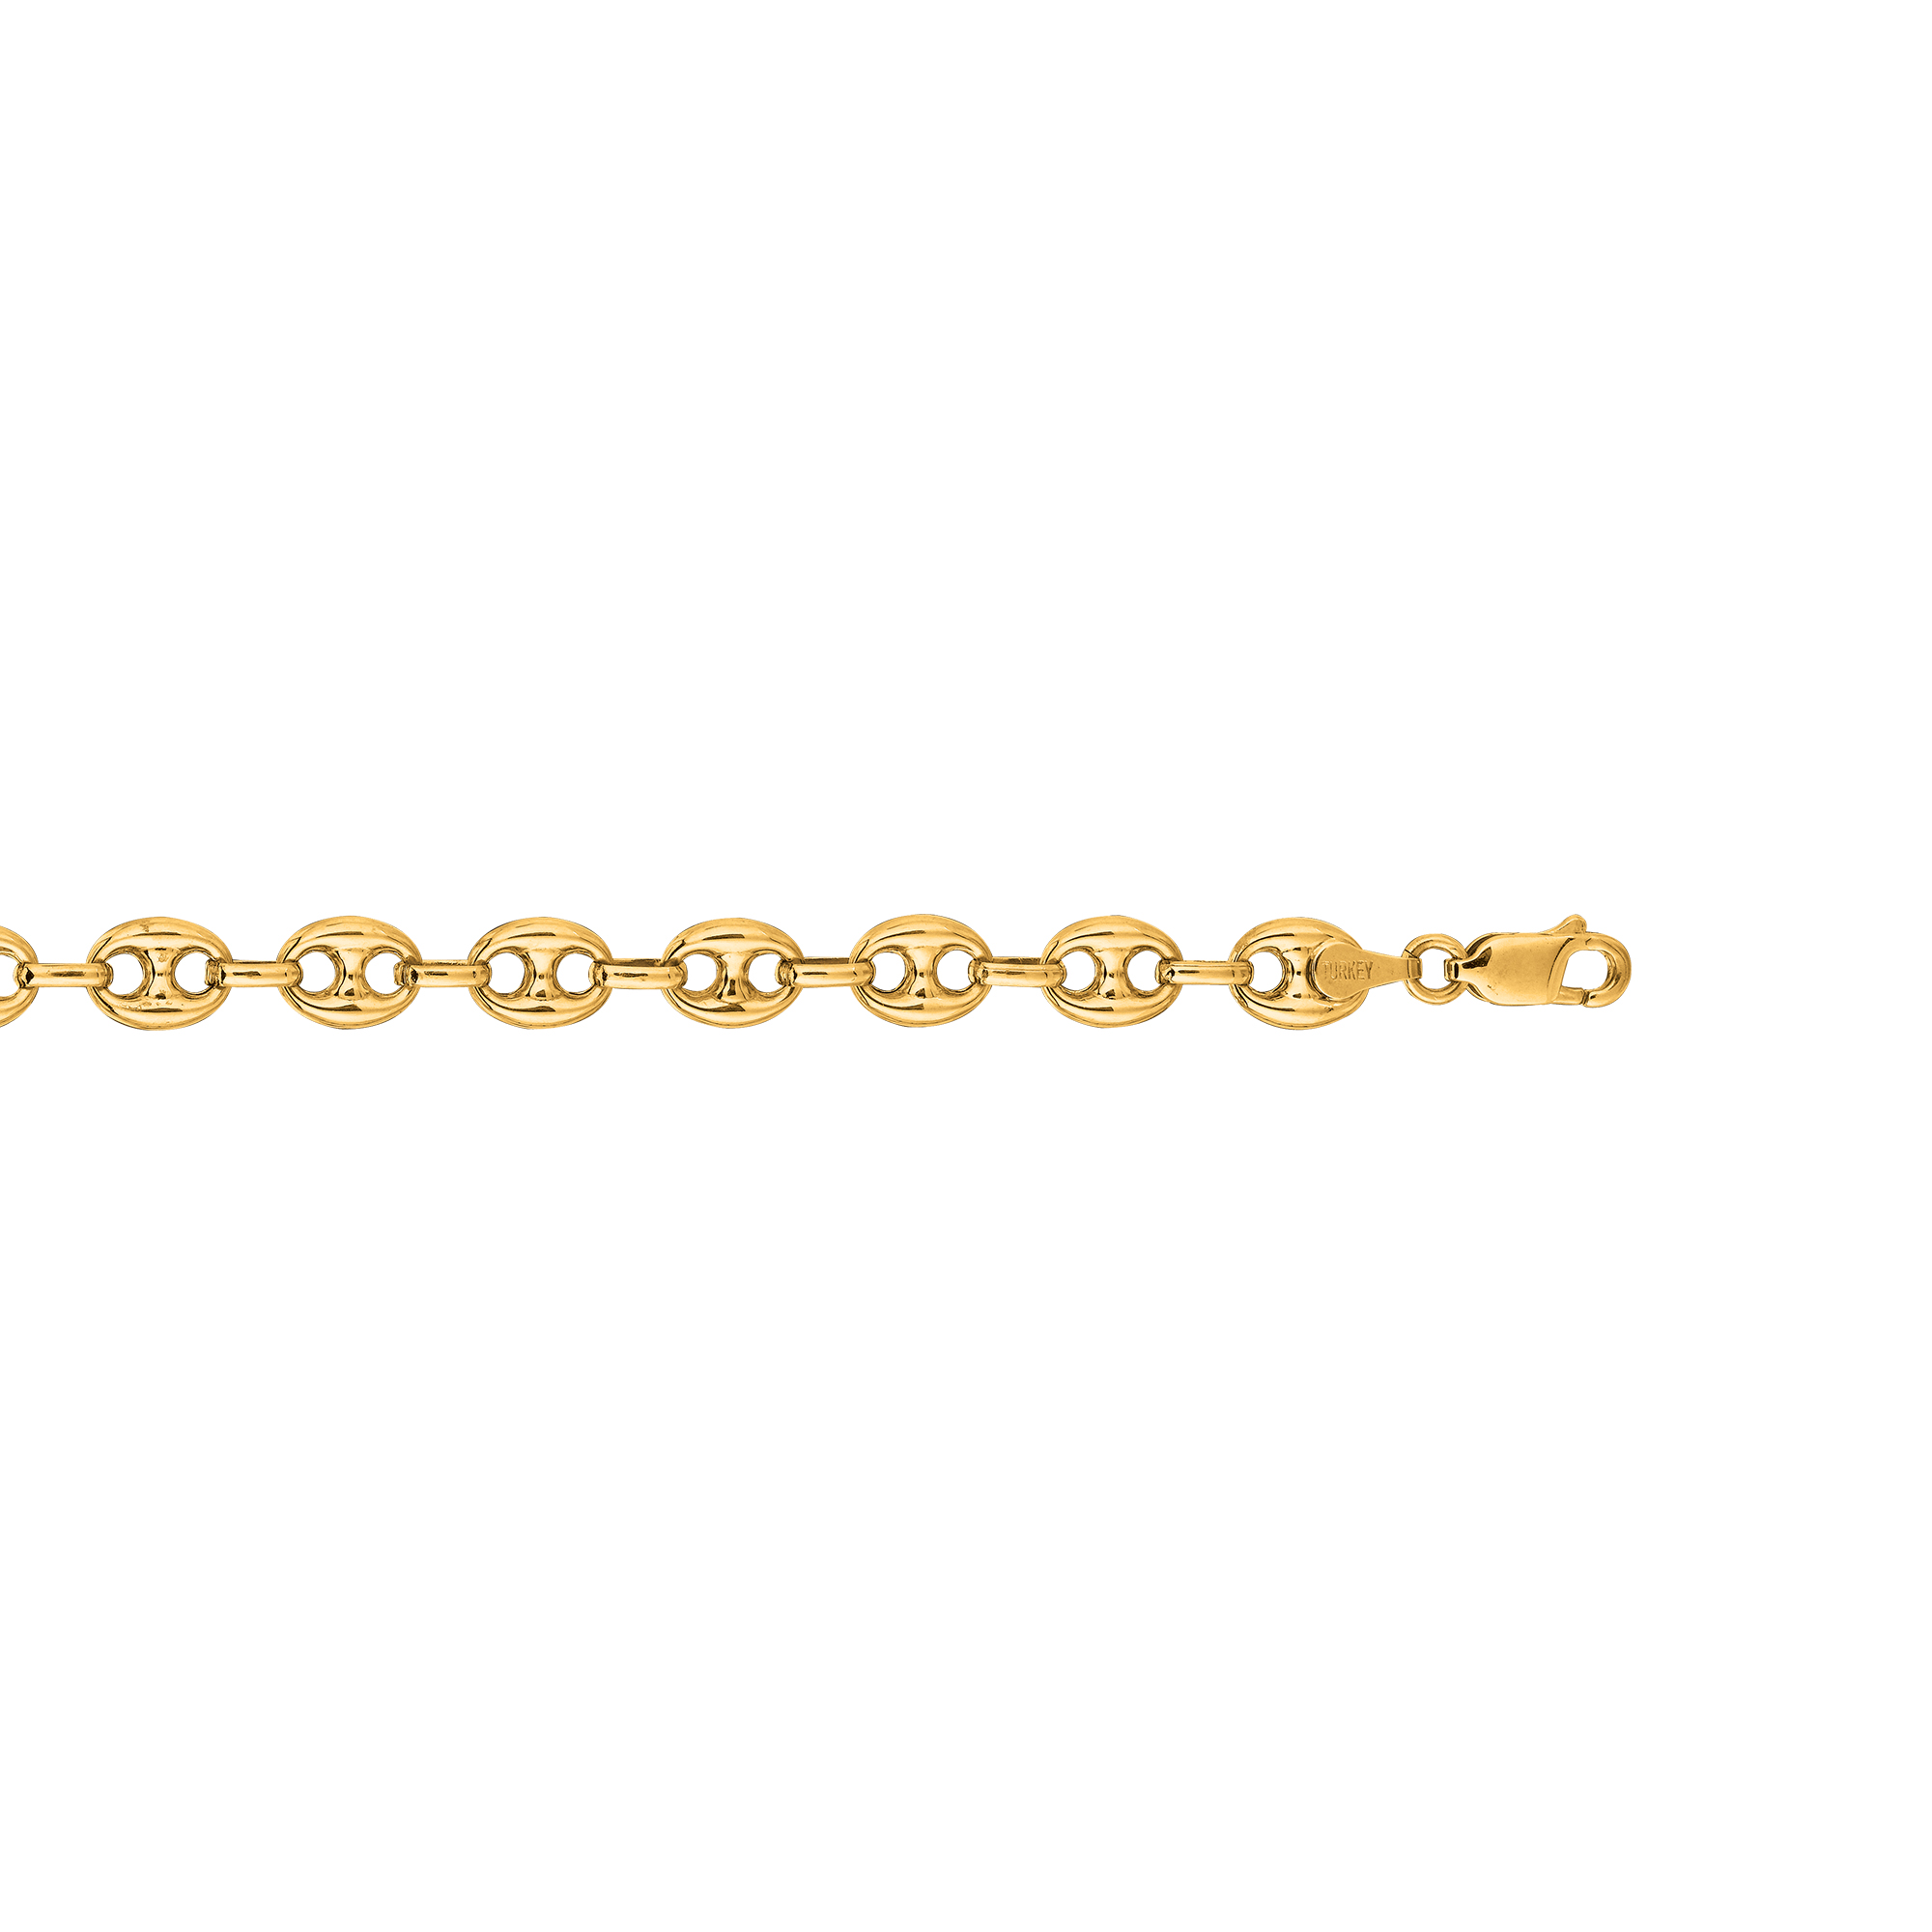 Hollow 14k Gold Gucci Chain For Men & Women Mariner Puffed 7mm Wide